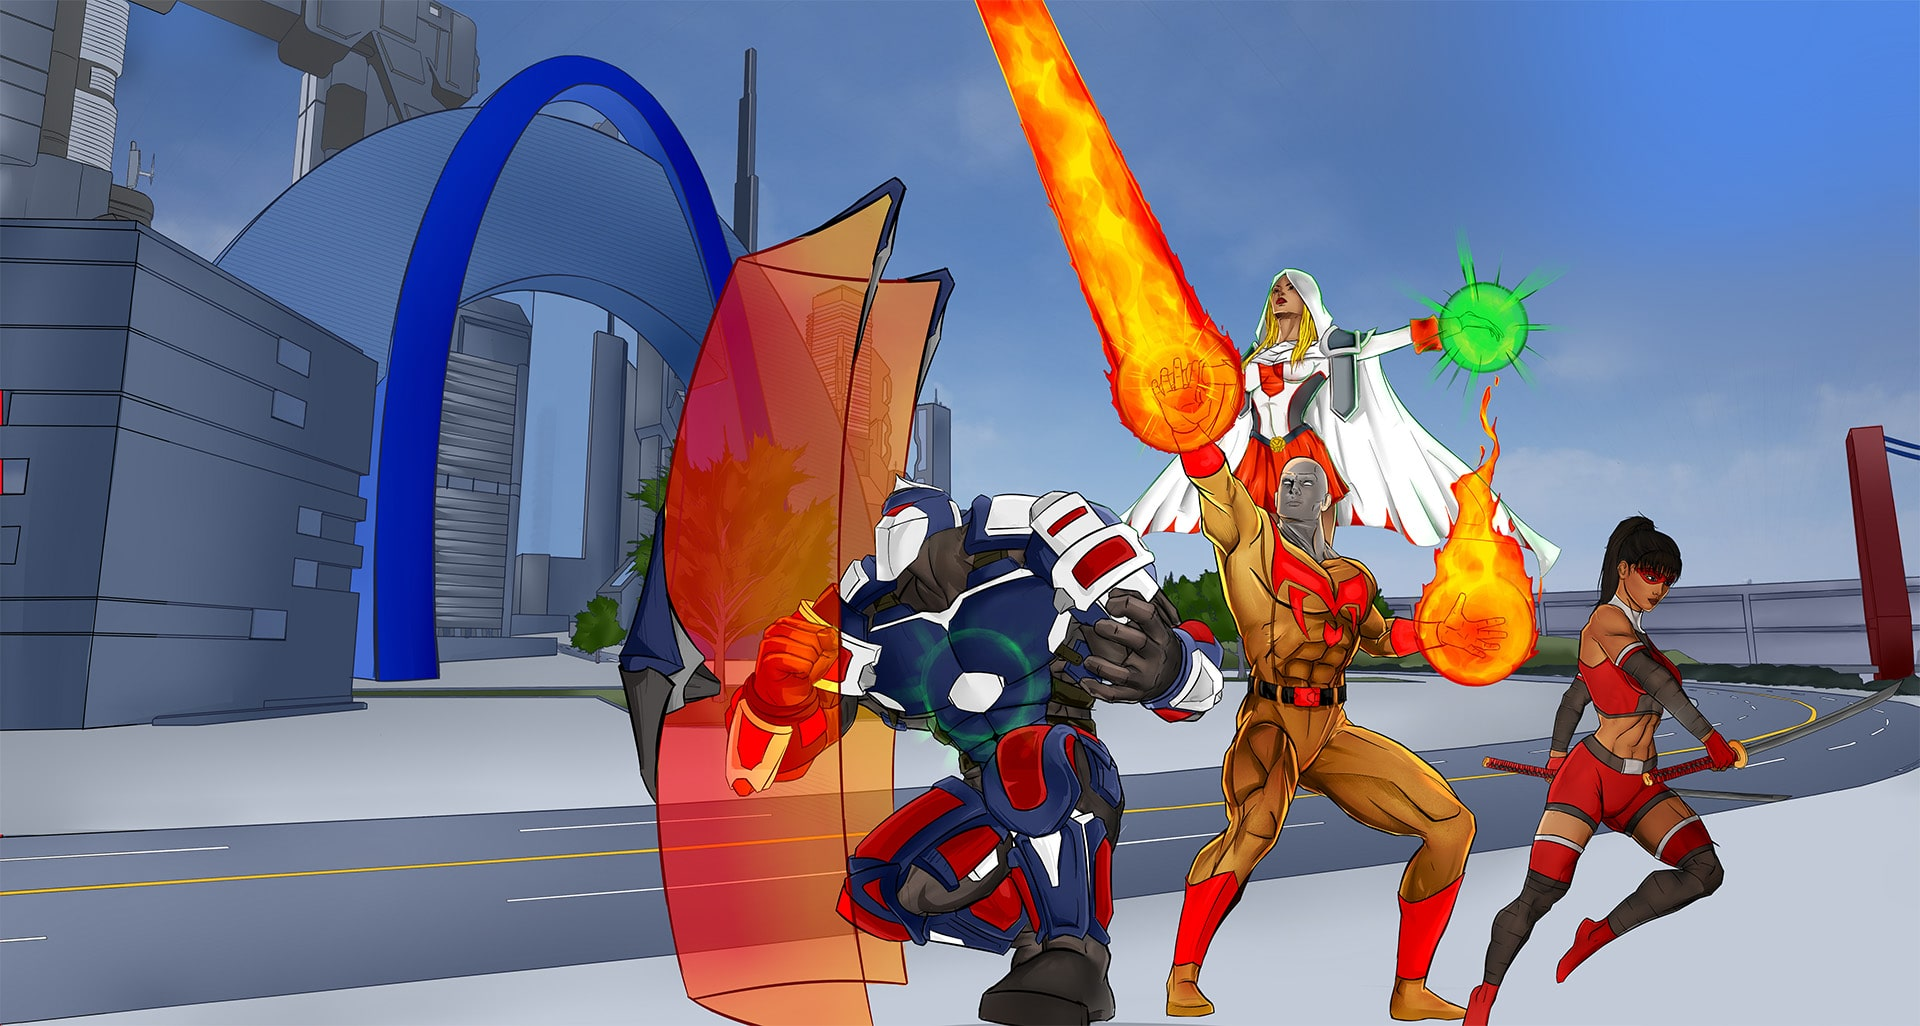 Descendants of City of Heroes in space